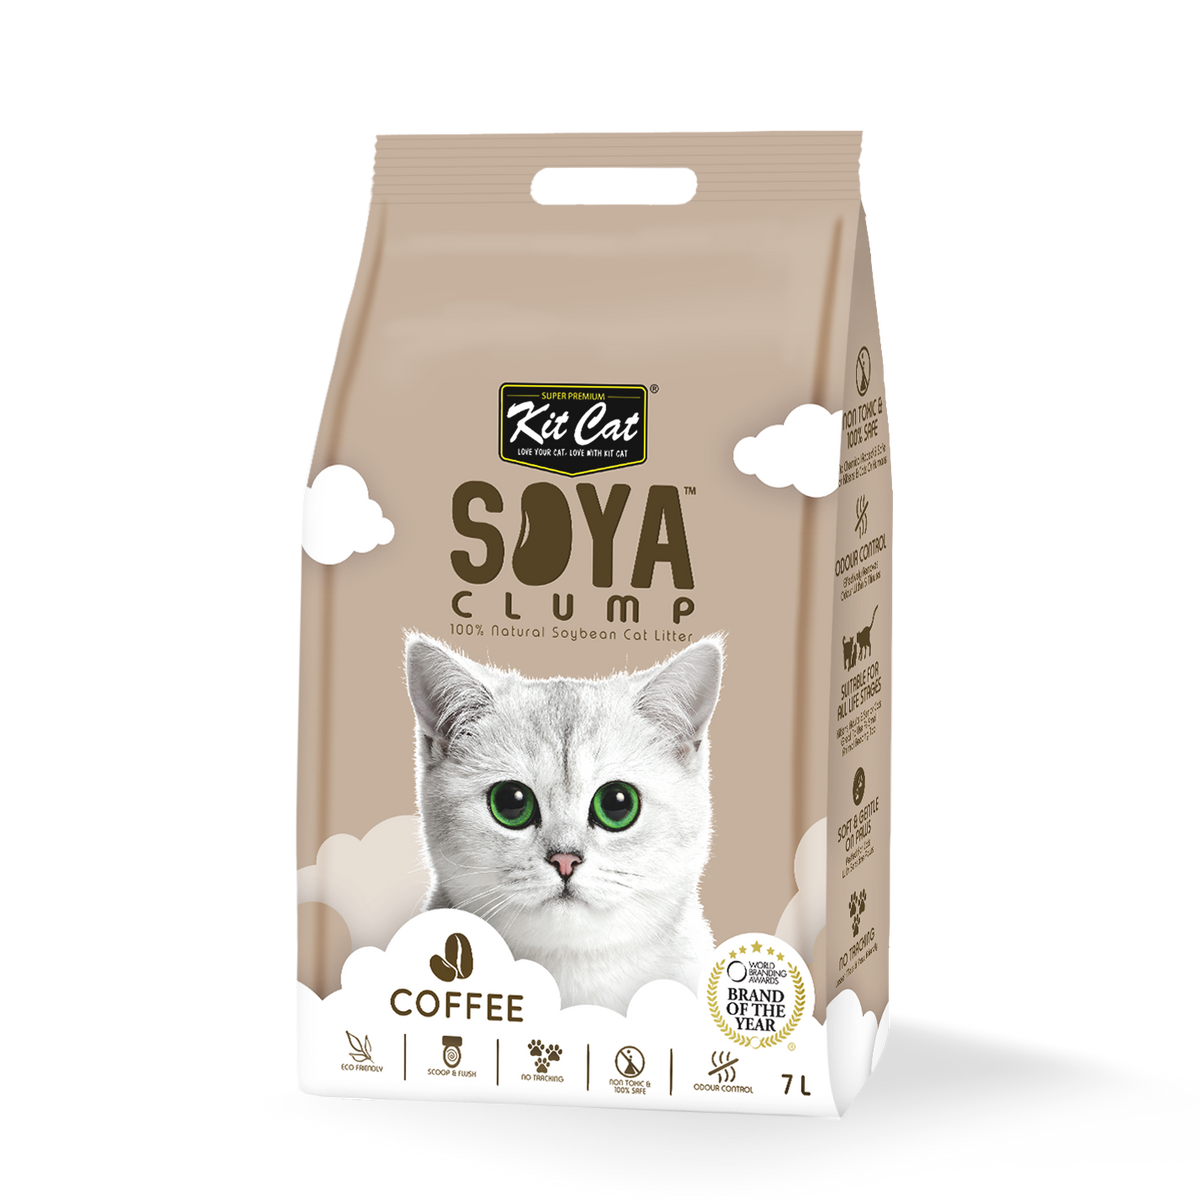 Kit Cat Soya Clump Coffee